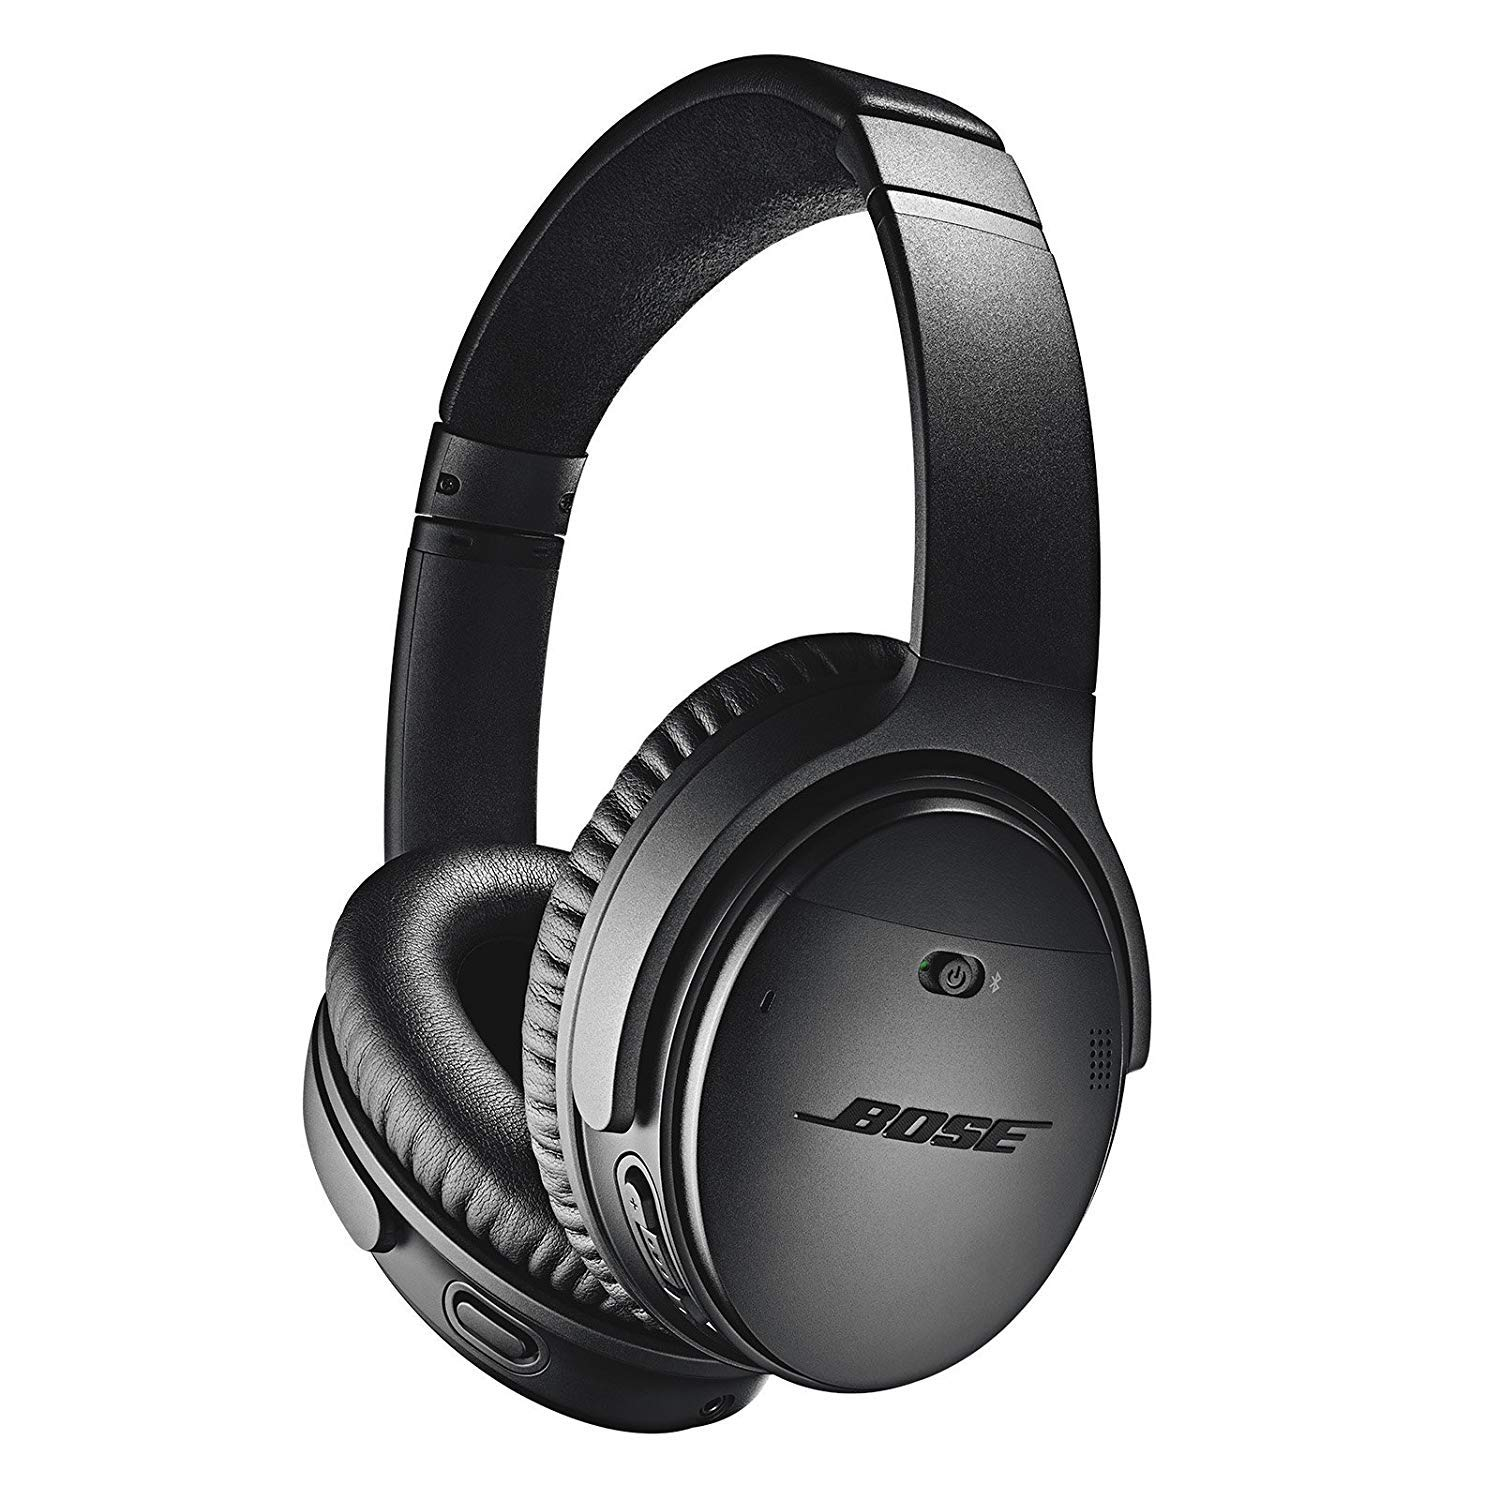 Bose QuietComfort 35 II Wireless Bluetooth Headphones, Noise-Cancelling, with Alexa voice control, enabled with Bose AR - Black by Bose